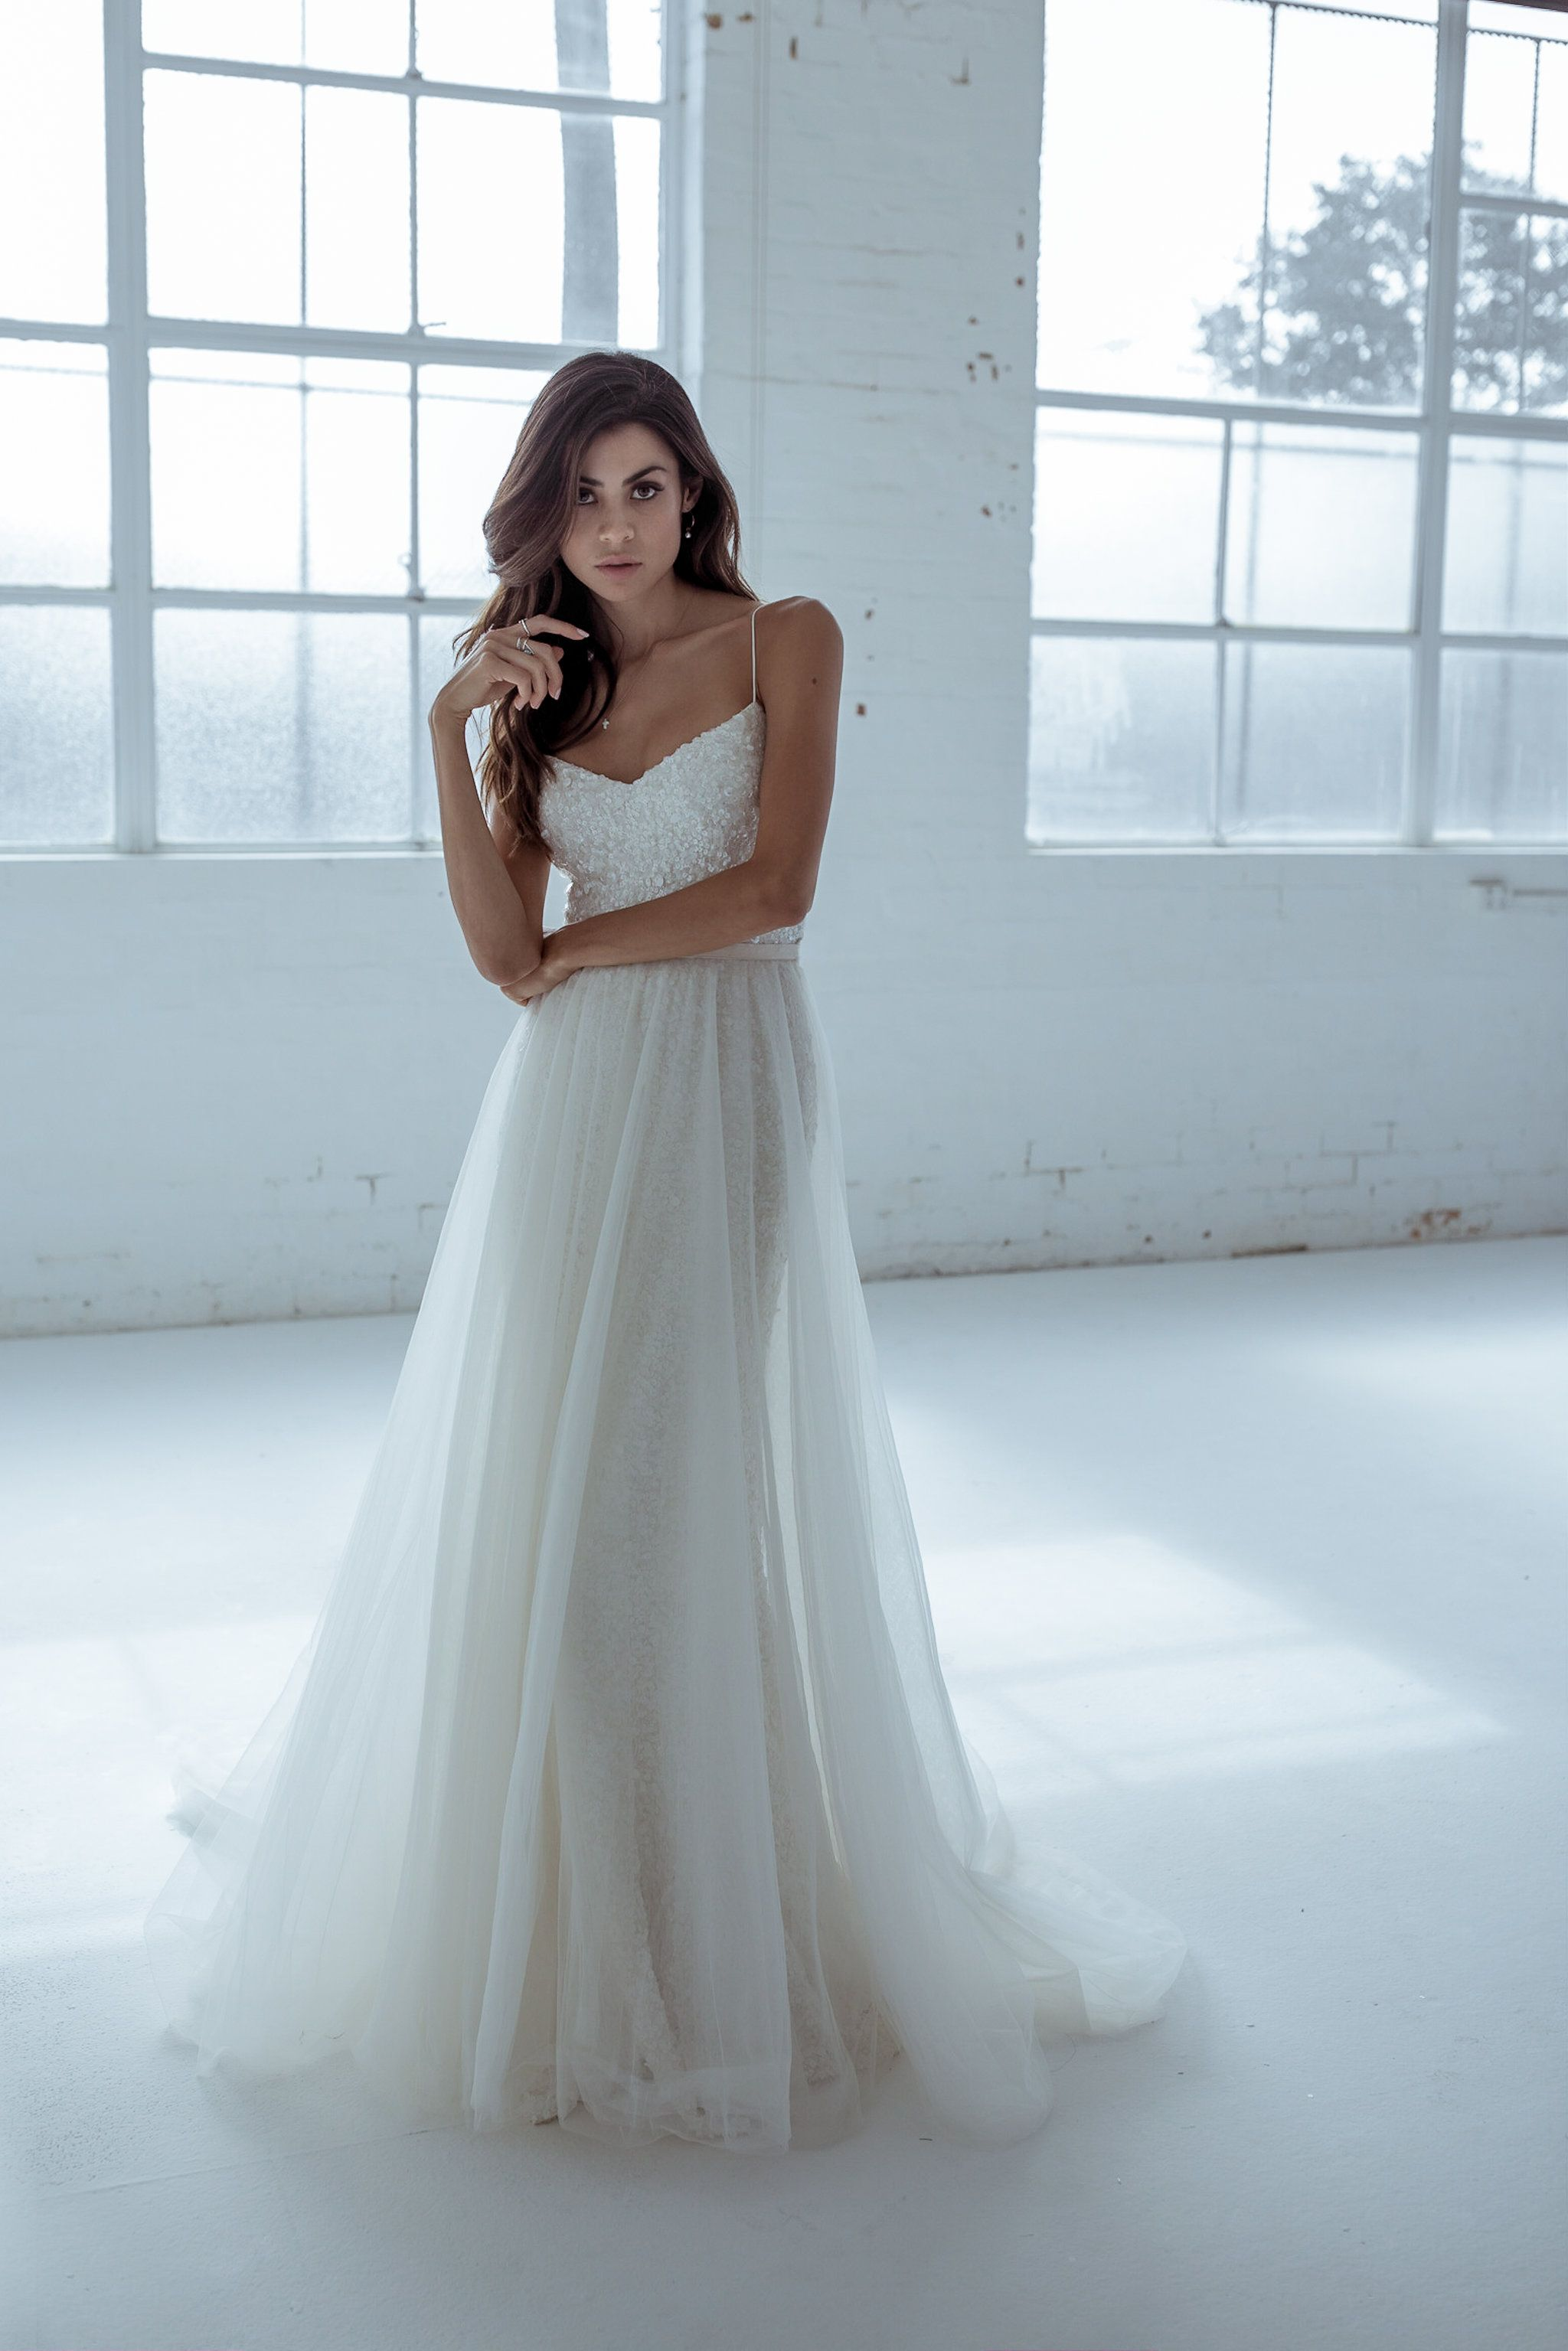 Maggie Overskirt | wedding dresses | Pinterest | Karen willis holmes ...